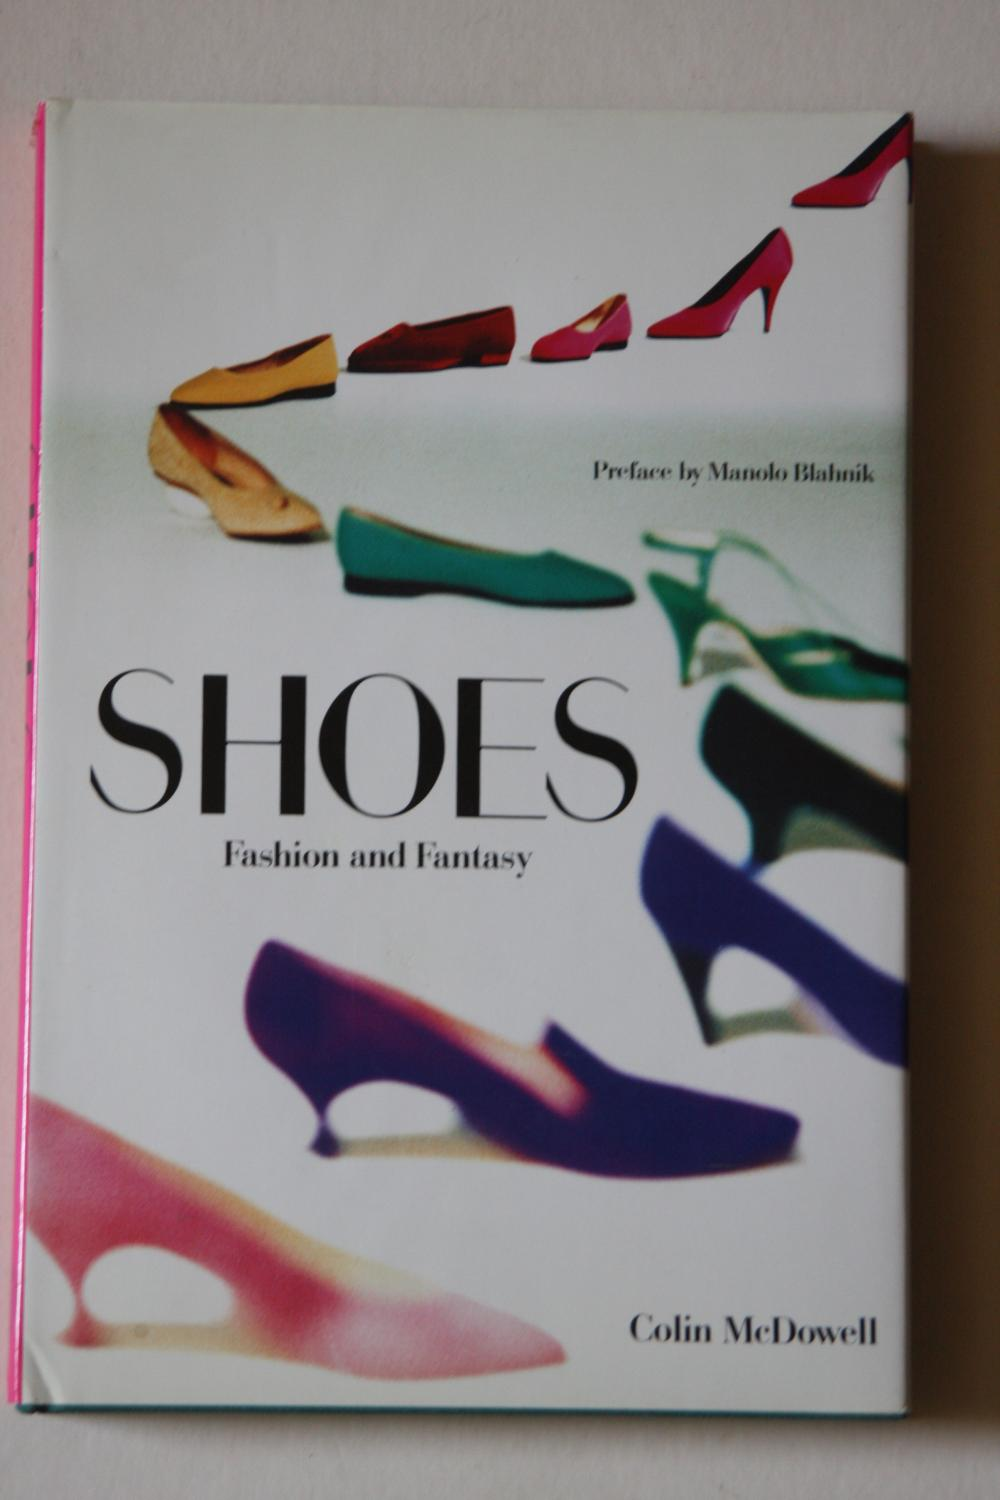 Shoes fashion and fantasy by colin mcdowell 52